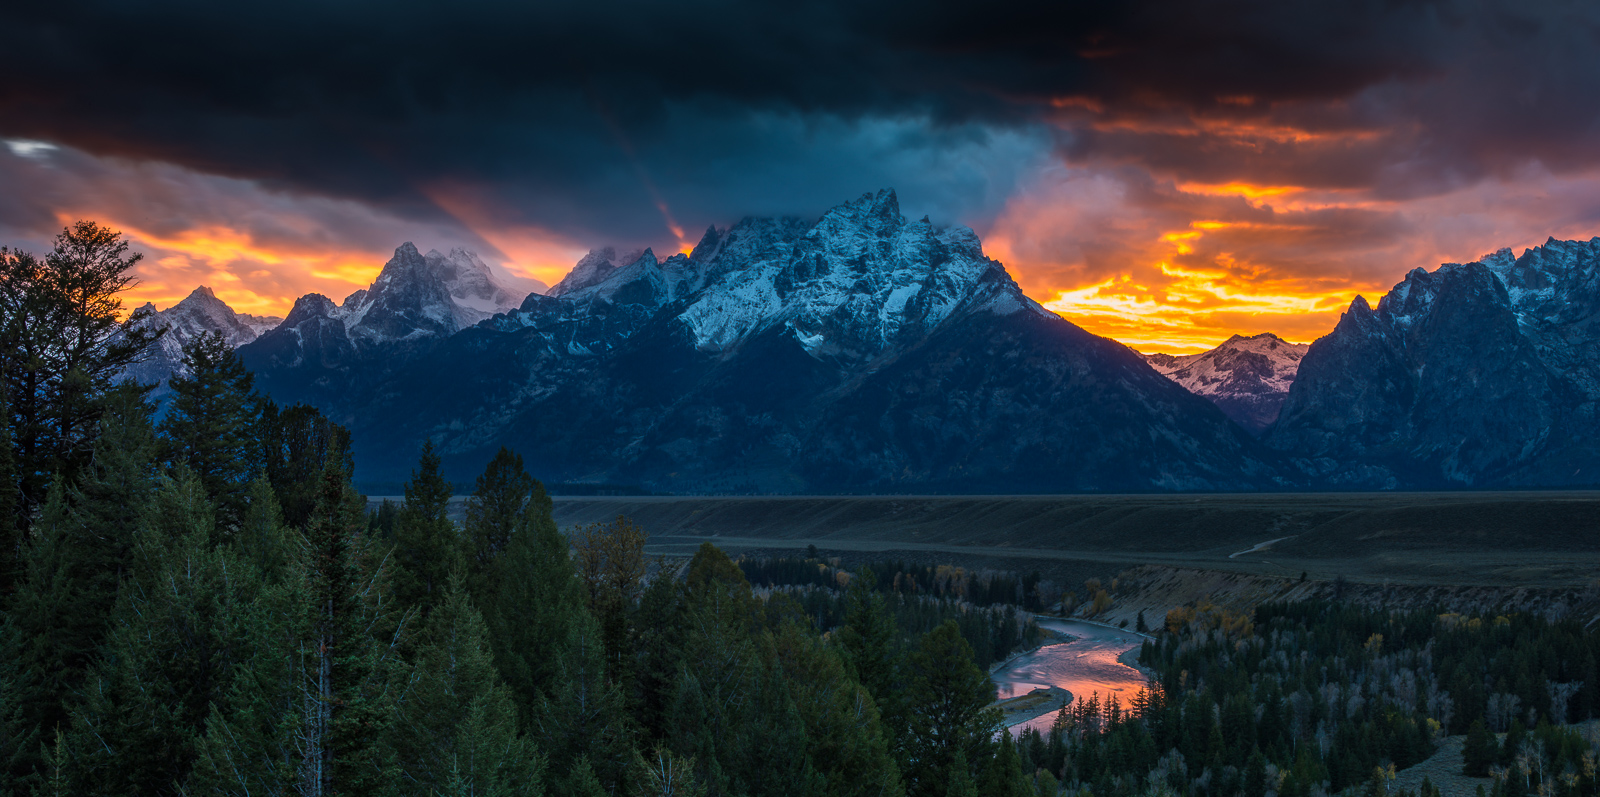 Magnificent sunsets are seen and felt. This one was no exception. The Tetons lit up as the sun bowed down to the encroaching...